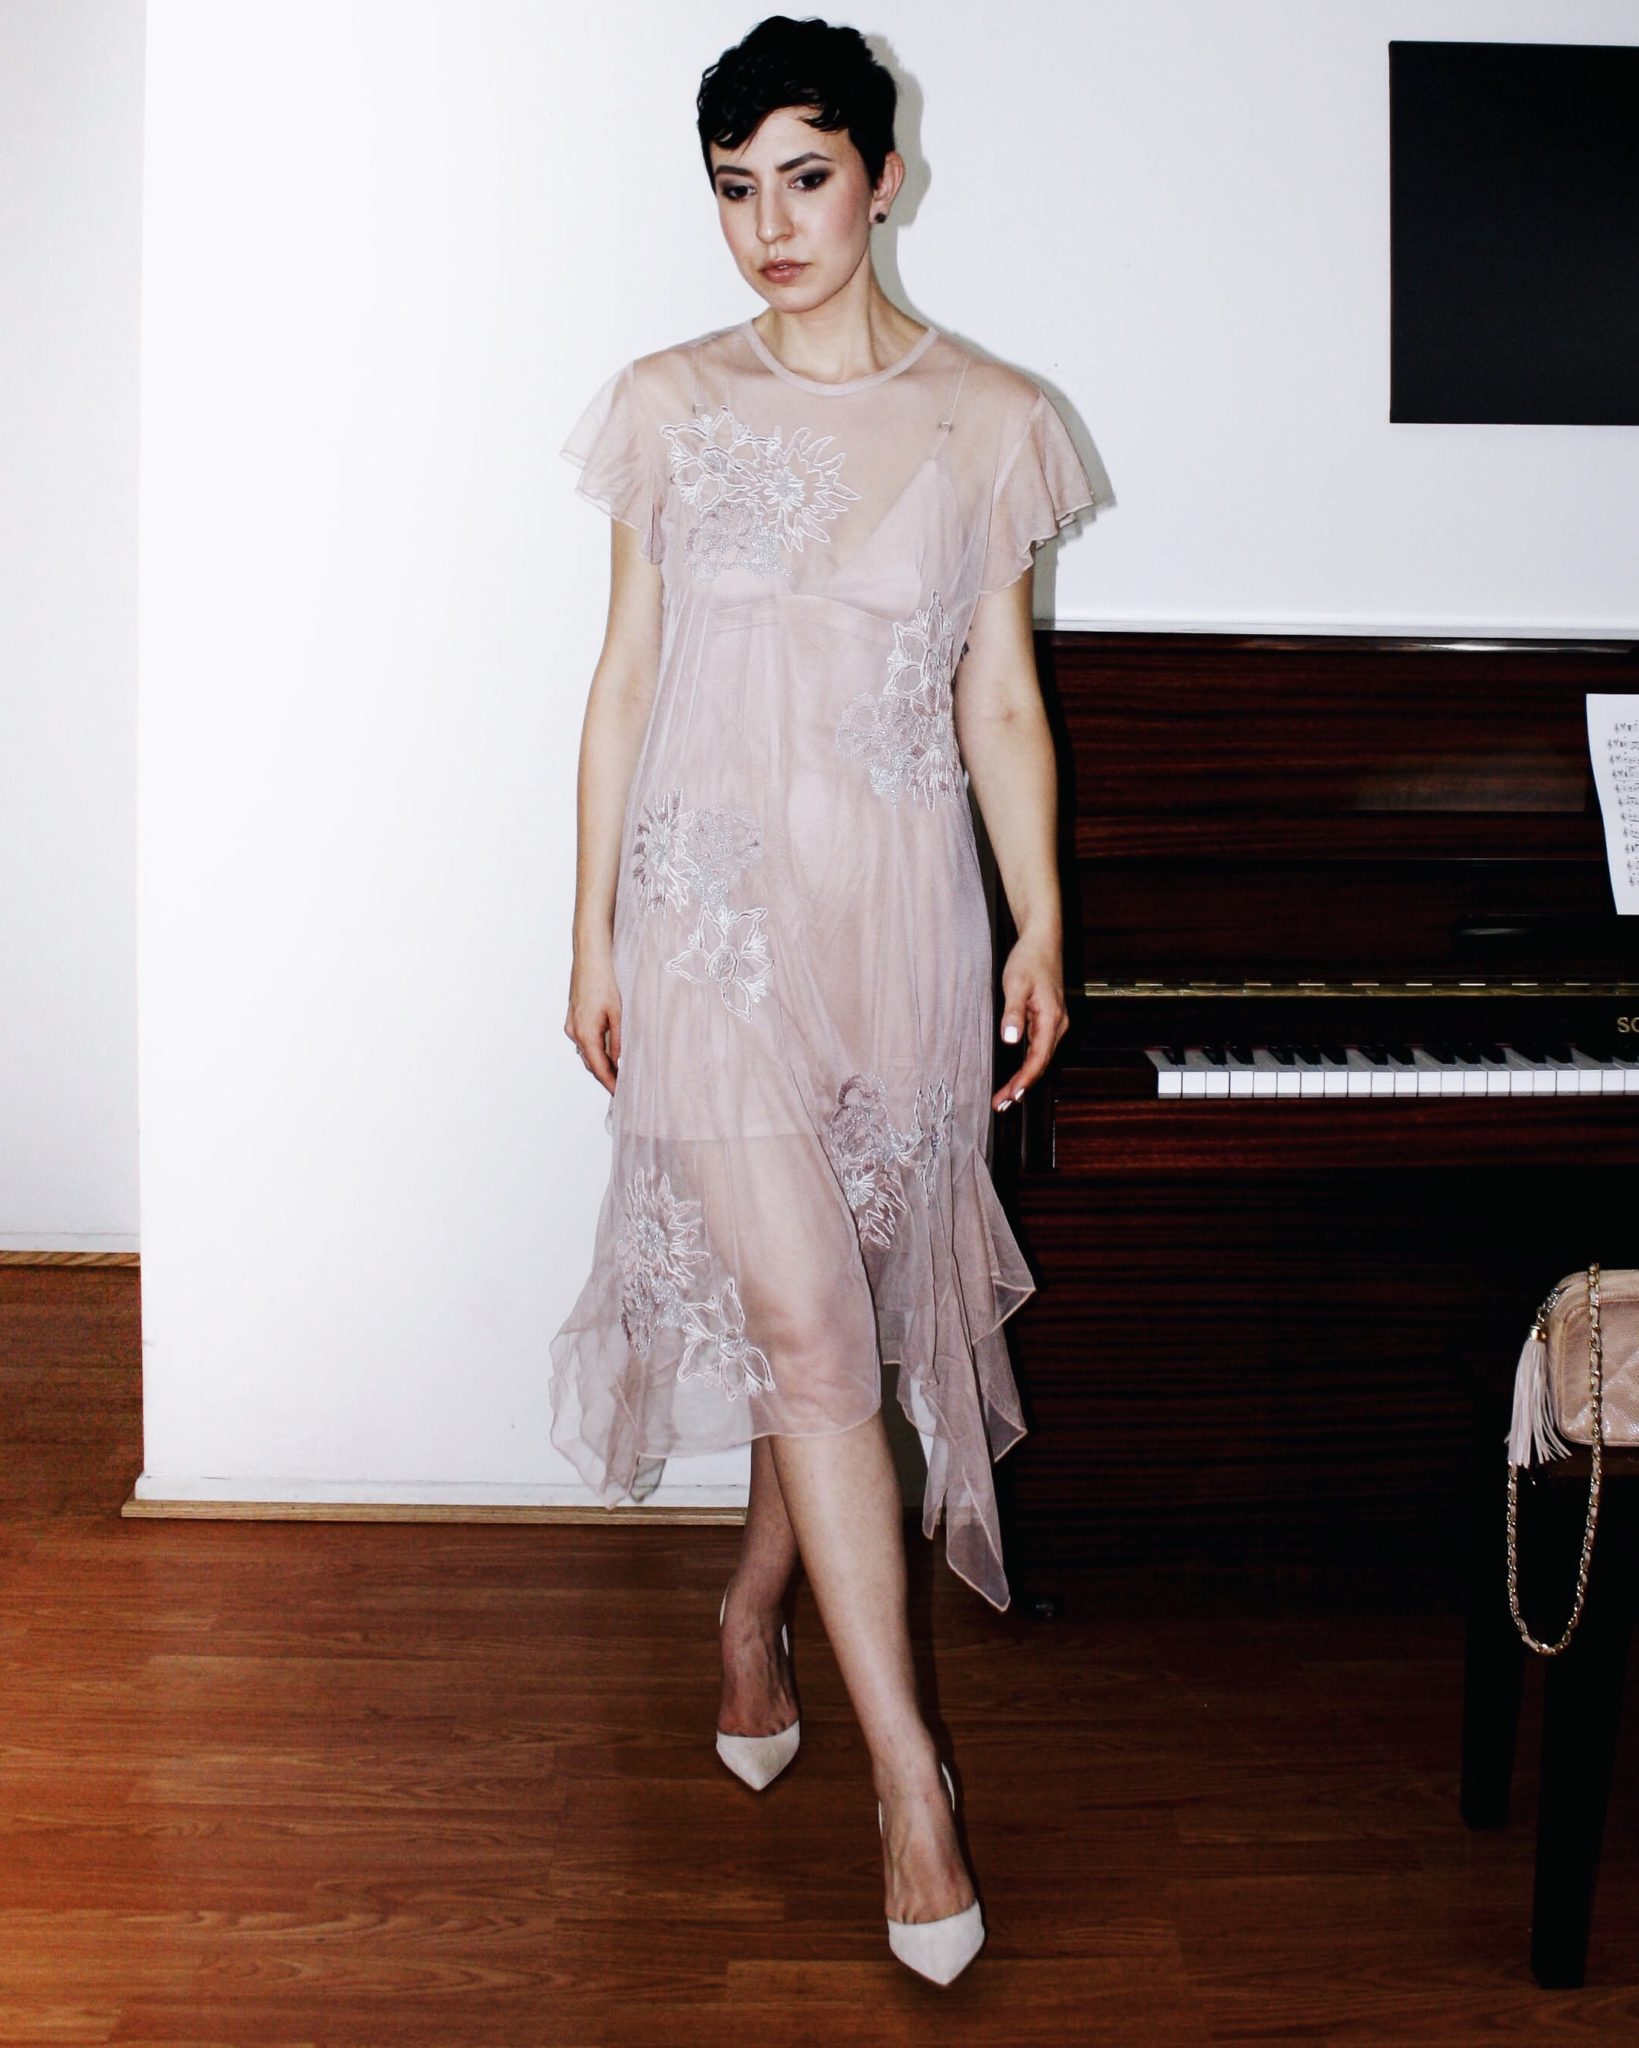 zara dress tulle naked dress embroidery chanel bag suede shoes giambattista valli 4